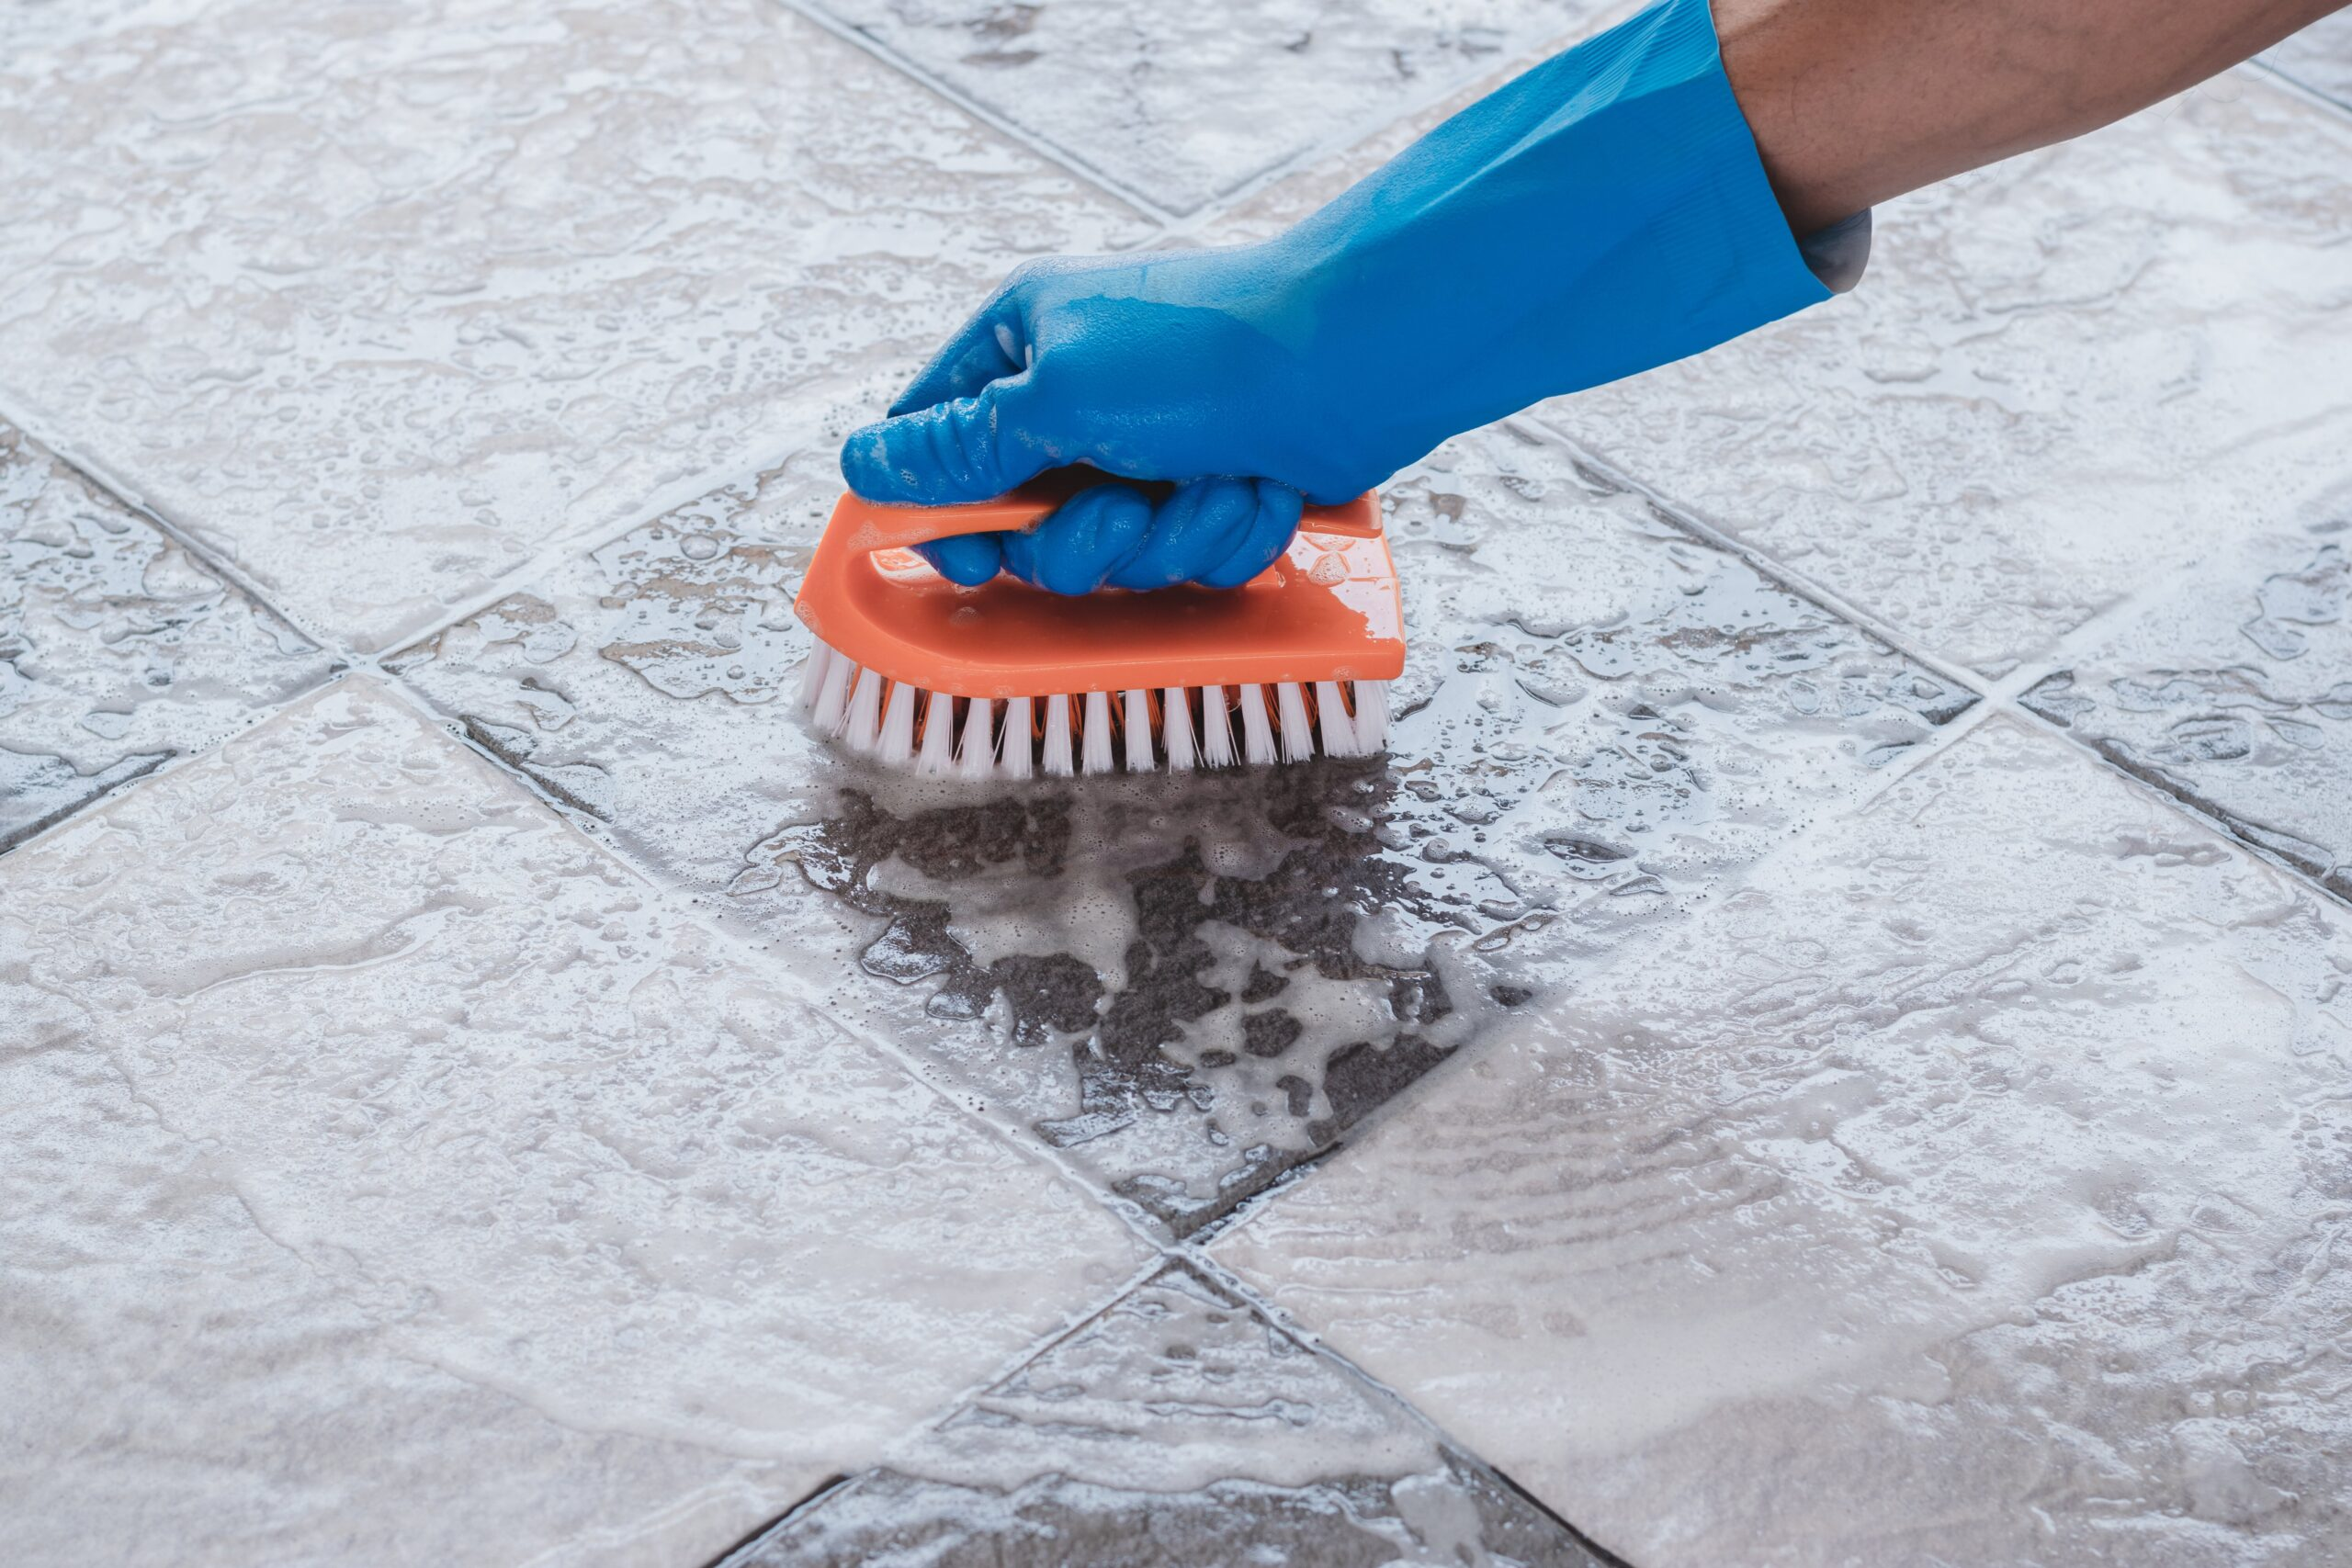 Marlborough Commercial Tile & Grout Cleaning